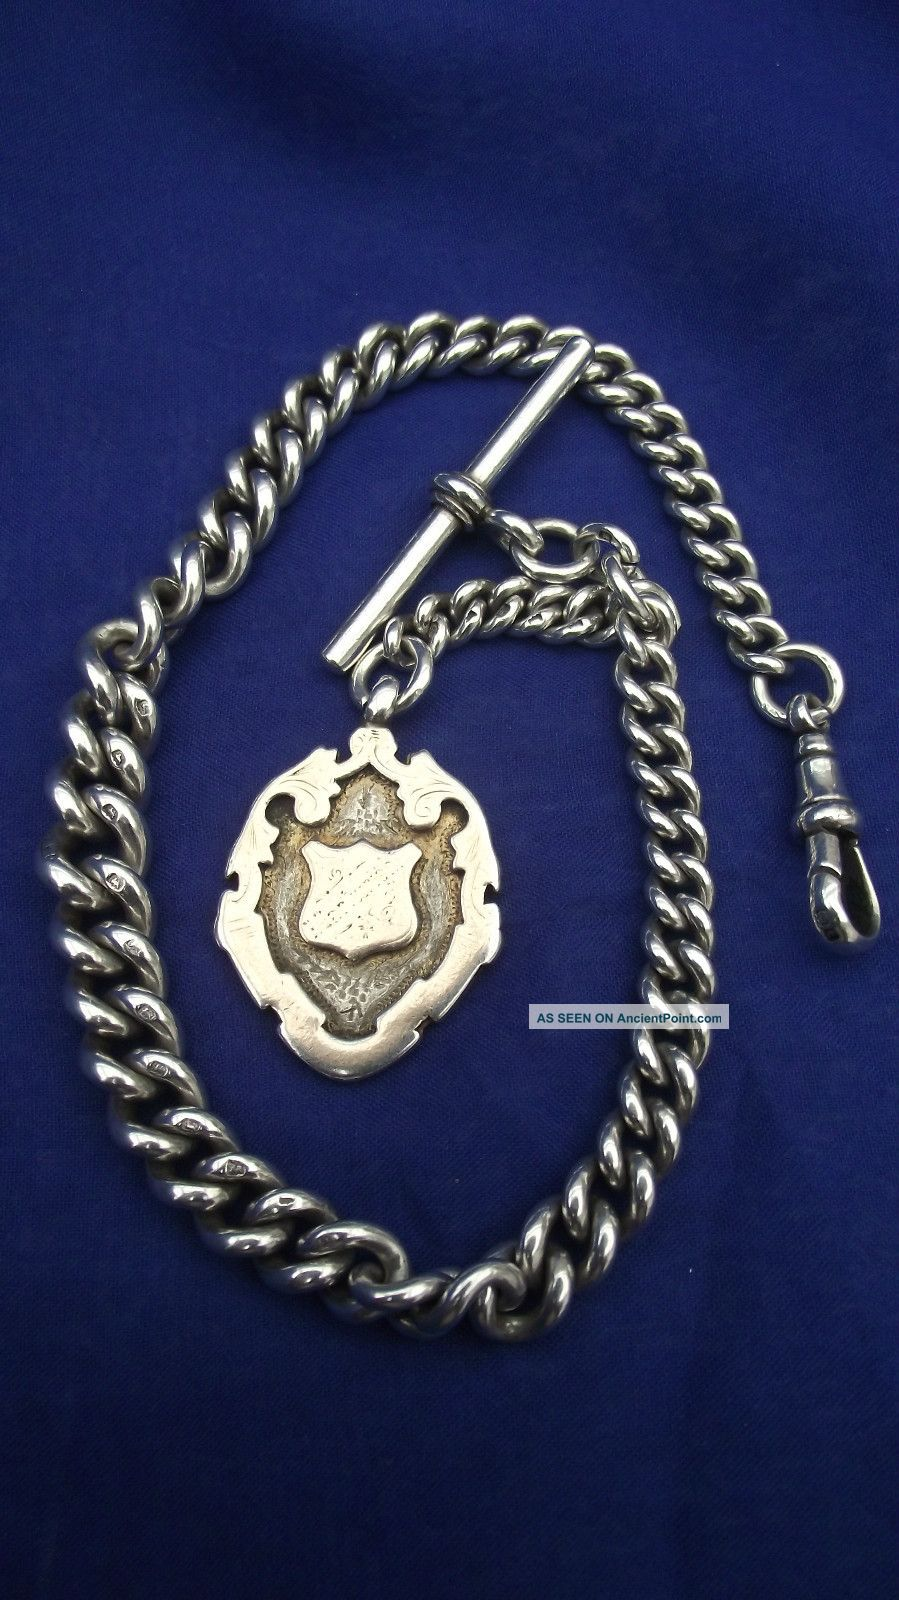 Sterling Silver Graduated Watch Chain 1918 & Fob 1907 Weight 56gm Pocket Watches/ Chains/ Fobs photo